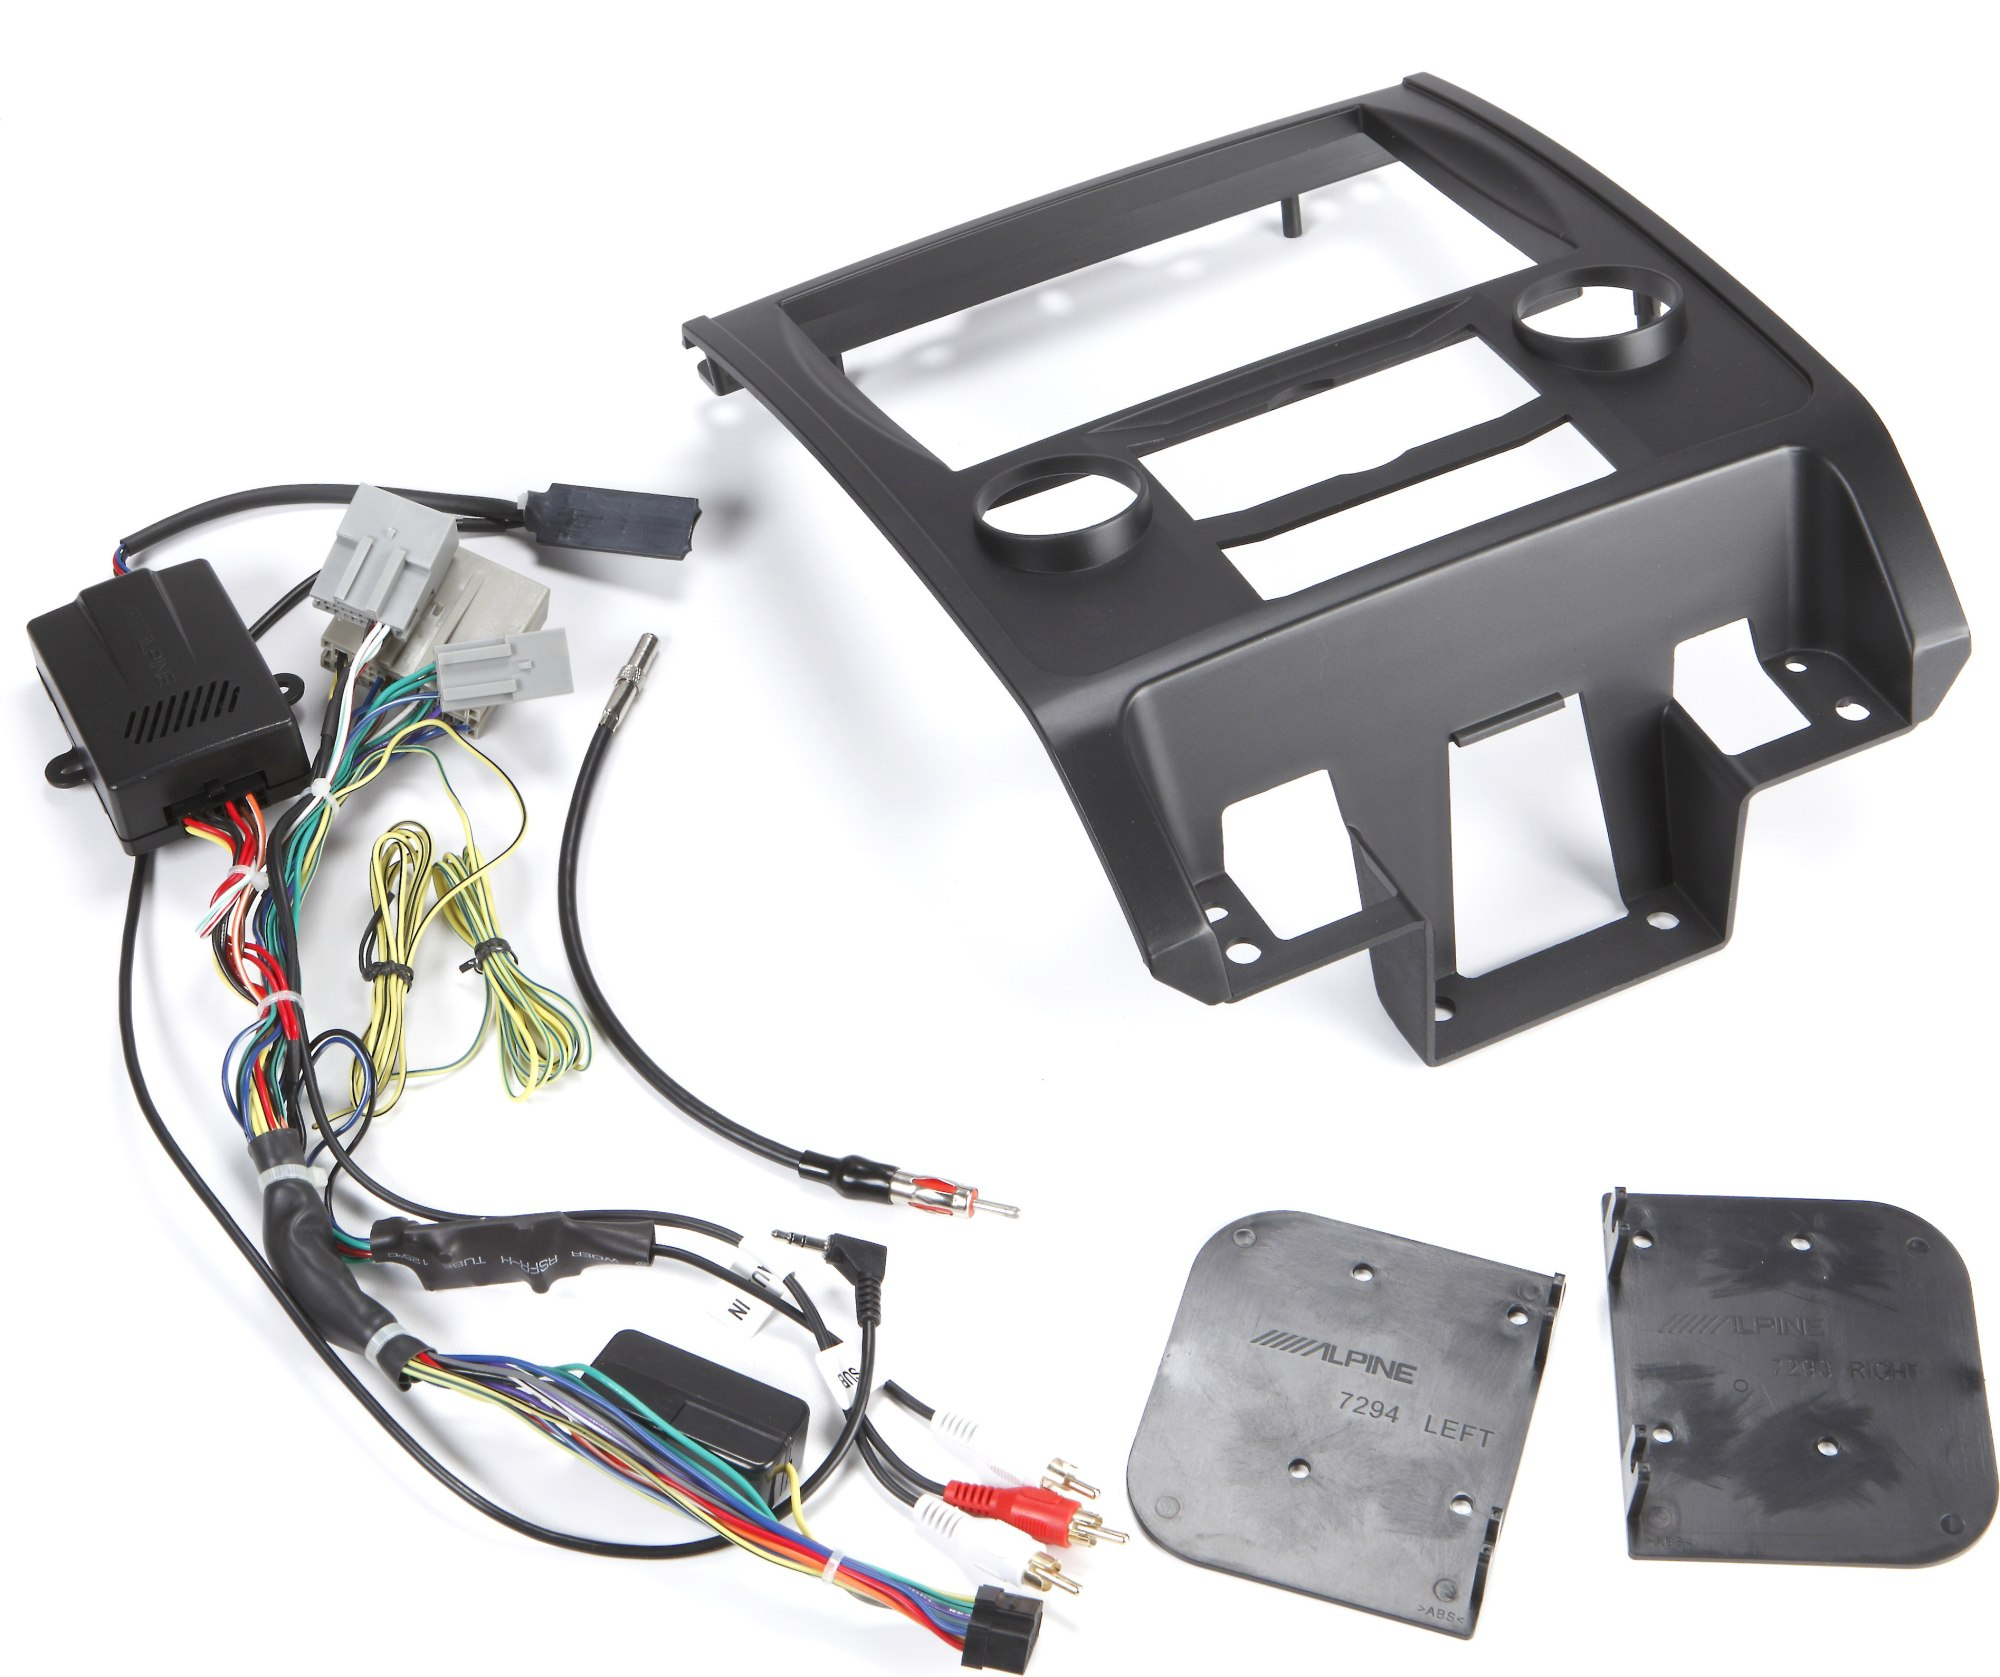 hight resolution of alpine ktx ecp8 restyle dash and wiring kit install and connect a alpine navigation system in select ford escape and mercury mariner models at crutchfield